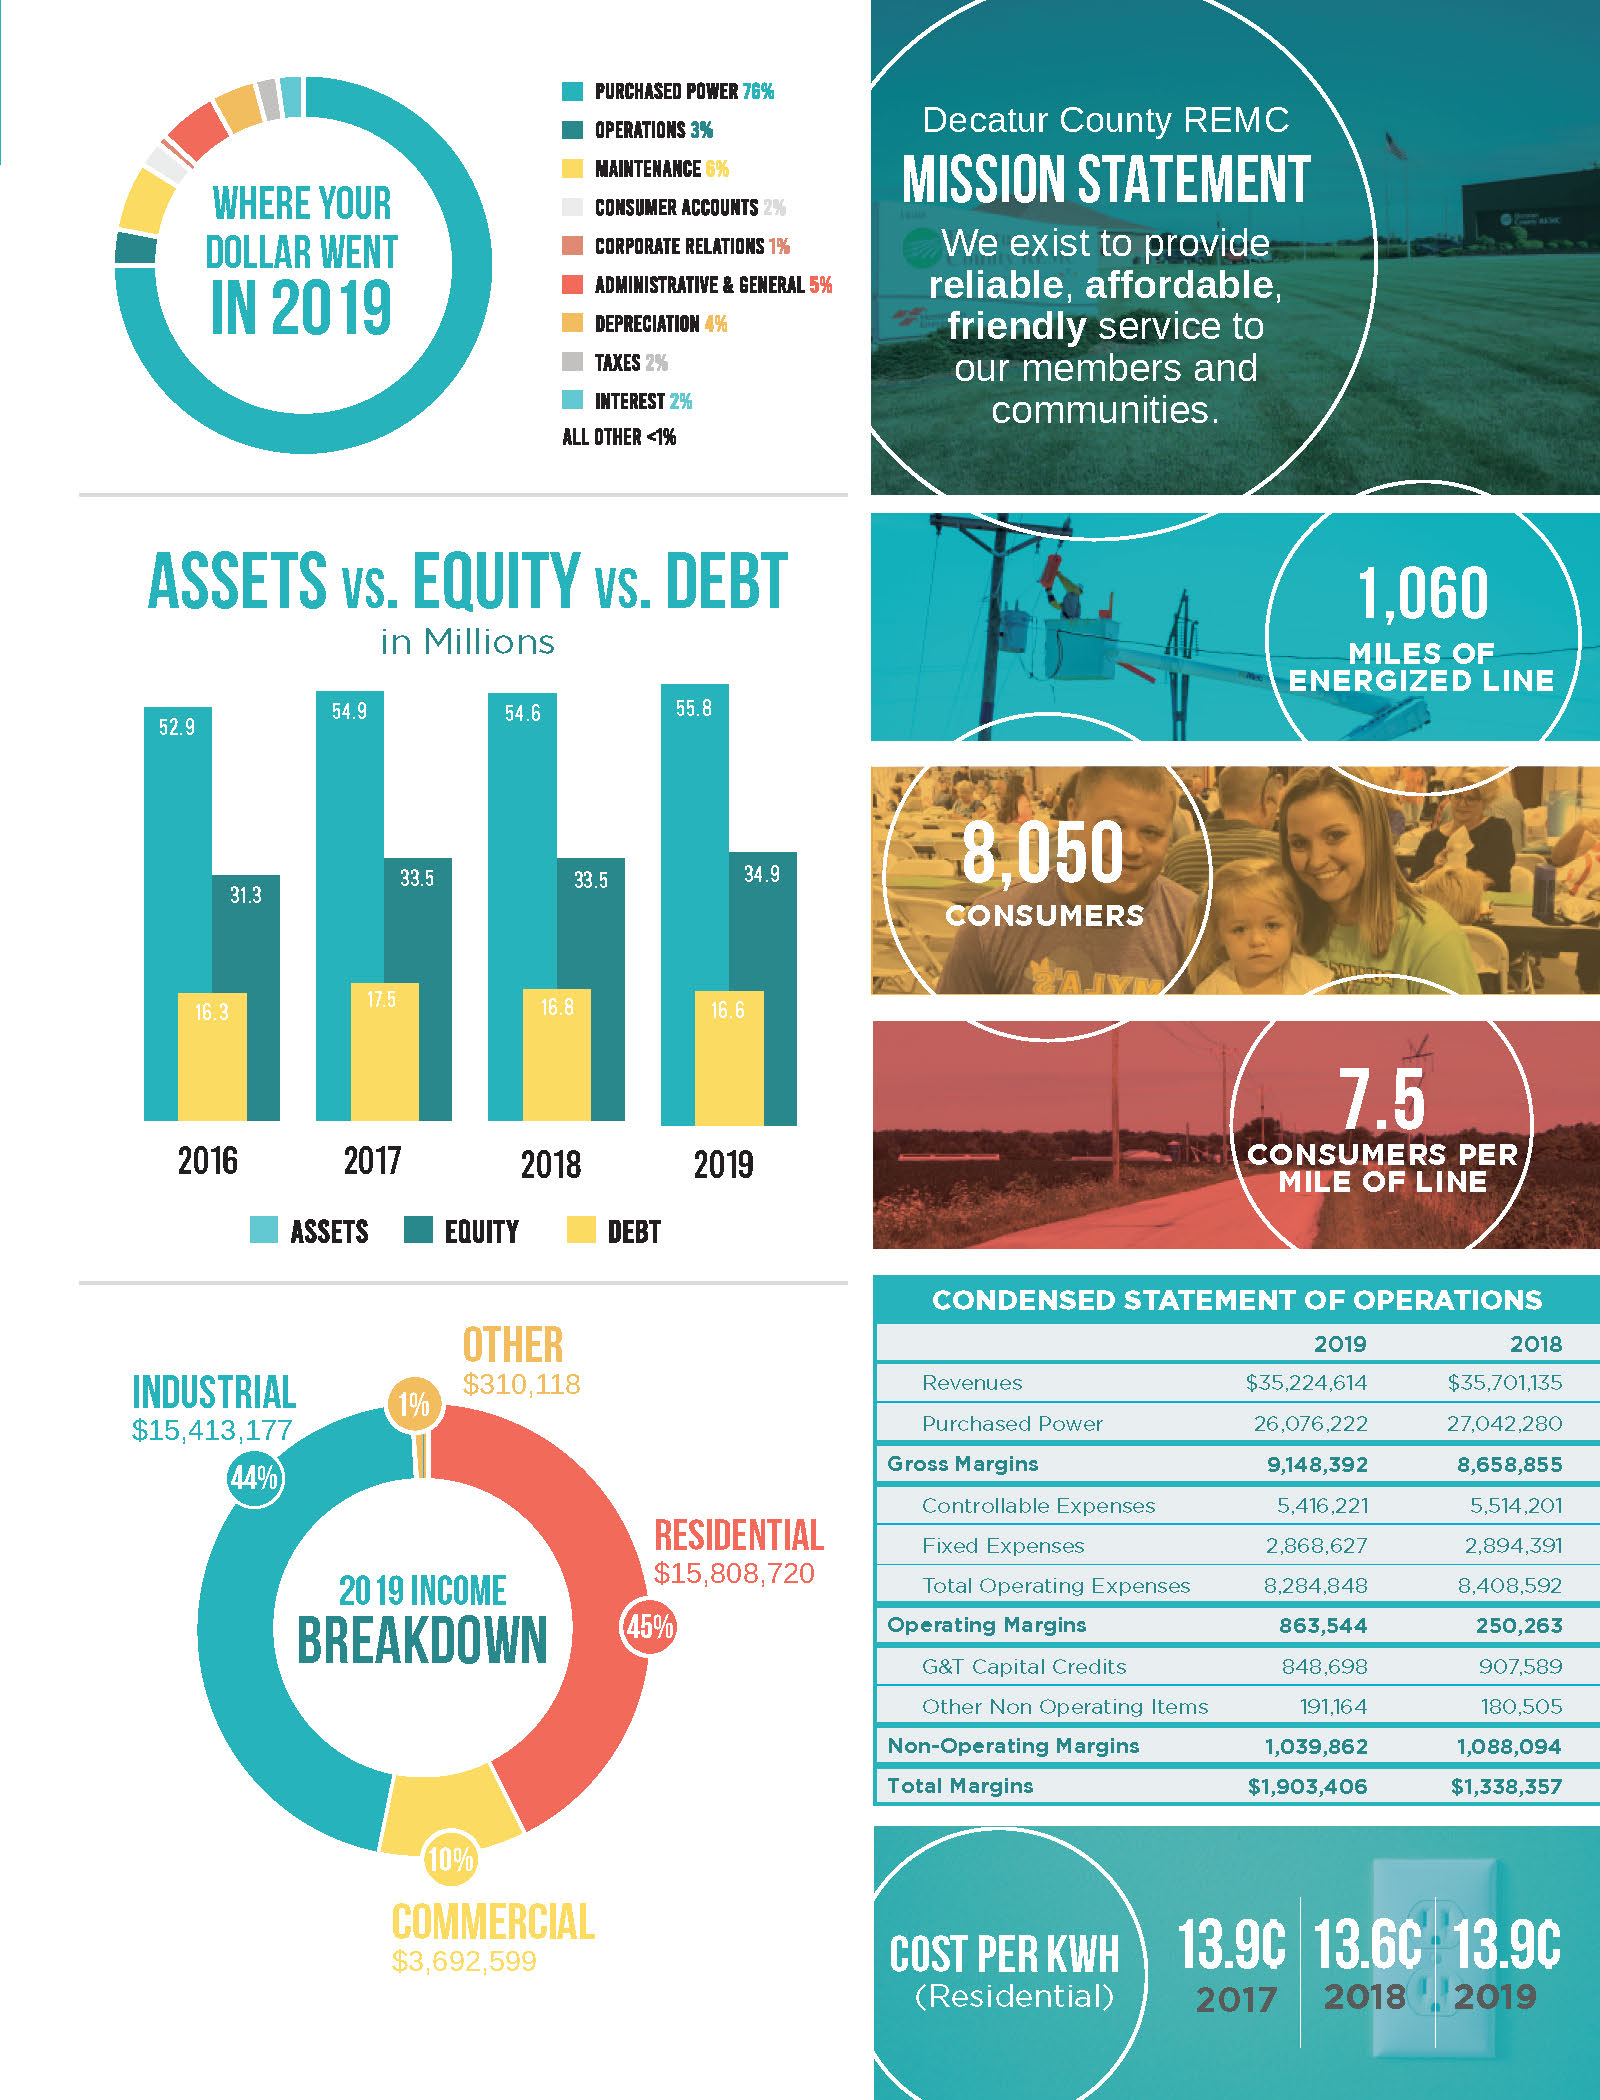 Financial infographic for DCREMC